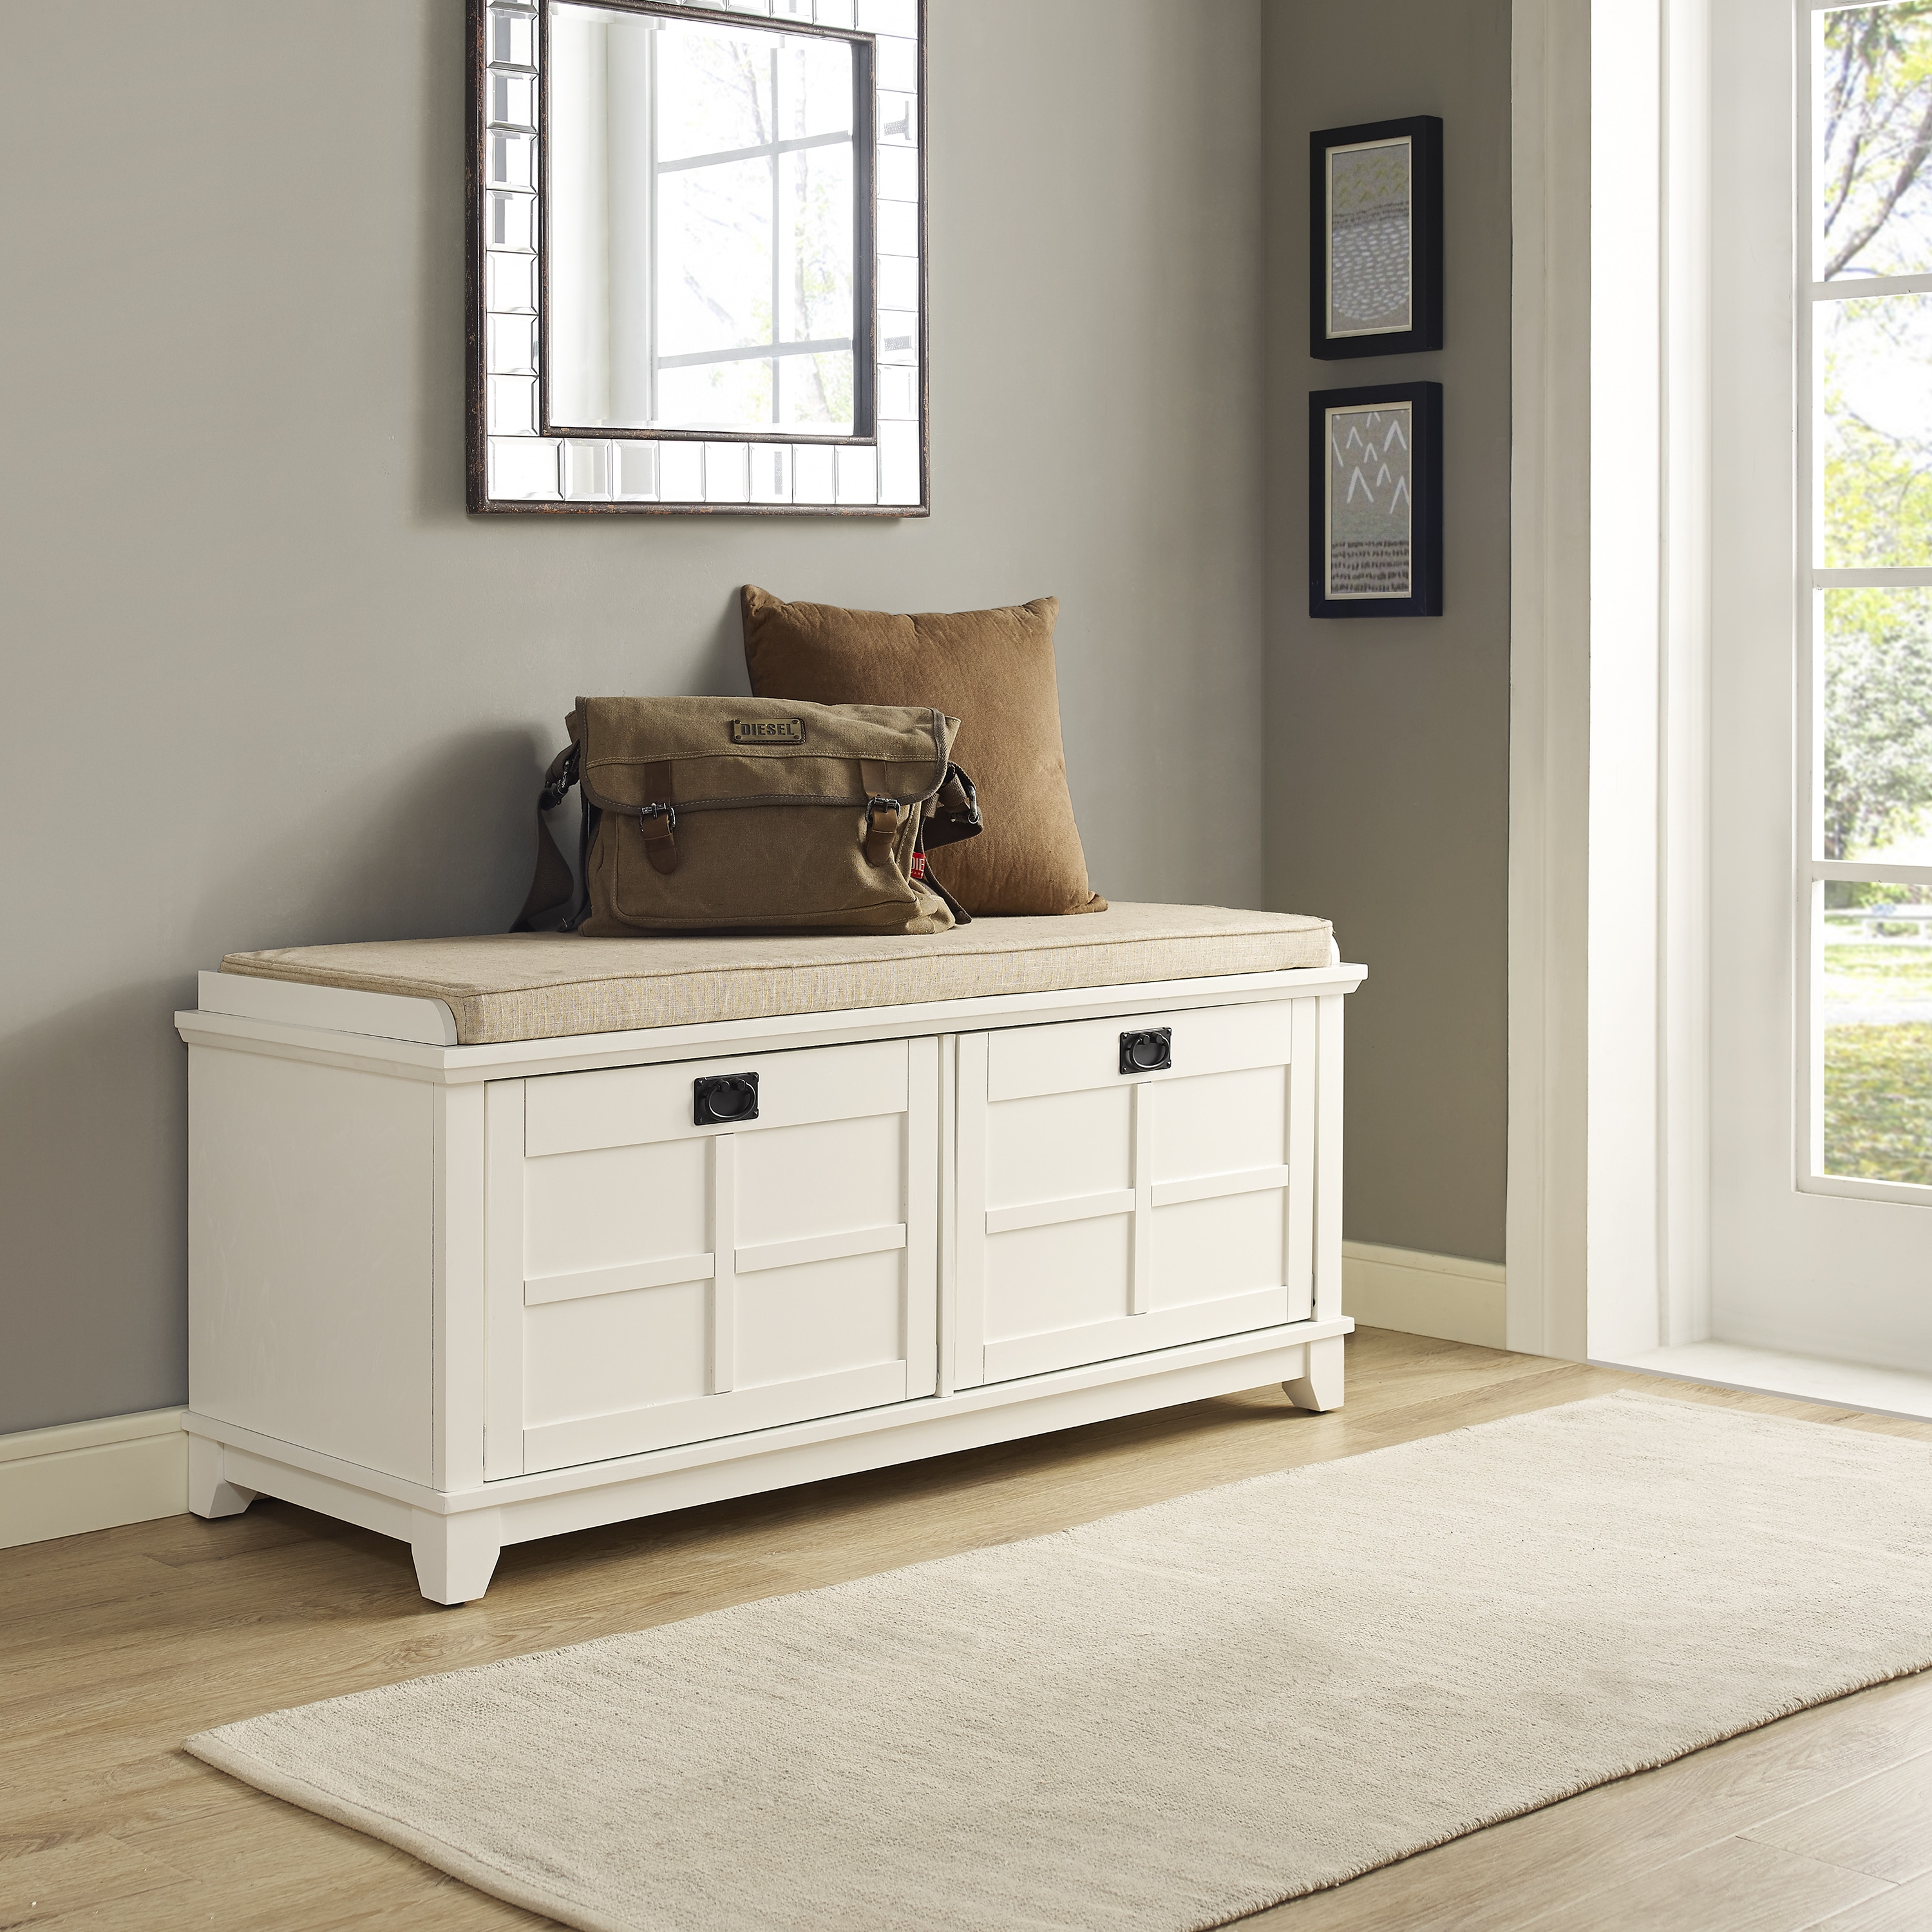 white entryway furniture. Crosley Furniture Adler White Entryway Bench - Free Shipping Today Overstock 22361901 O